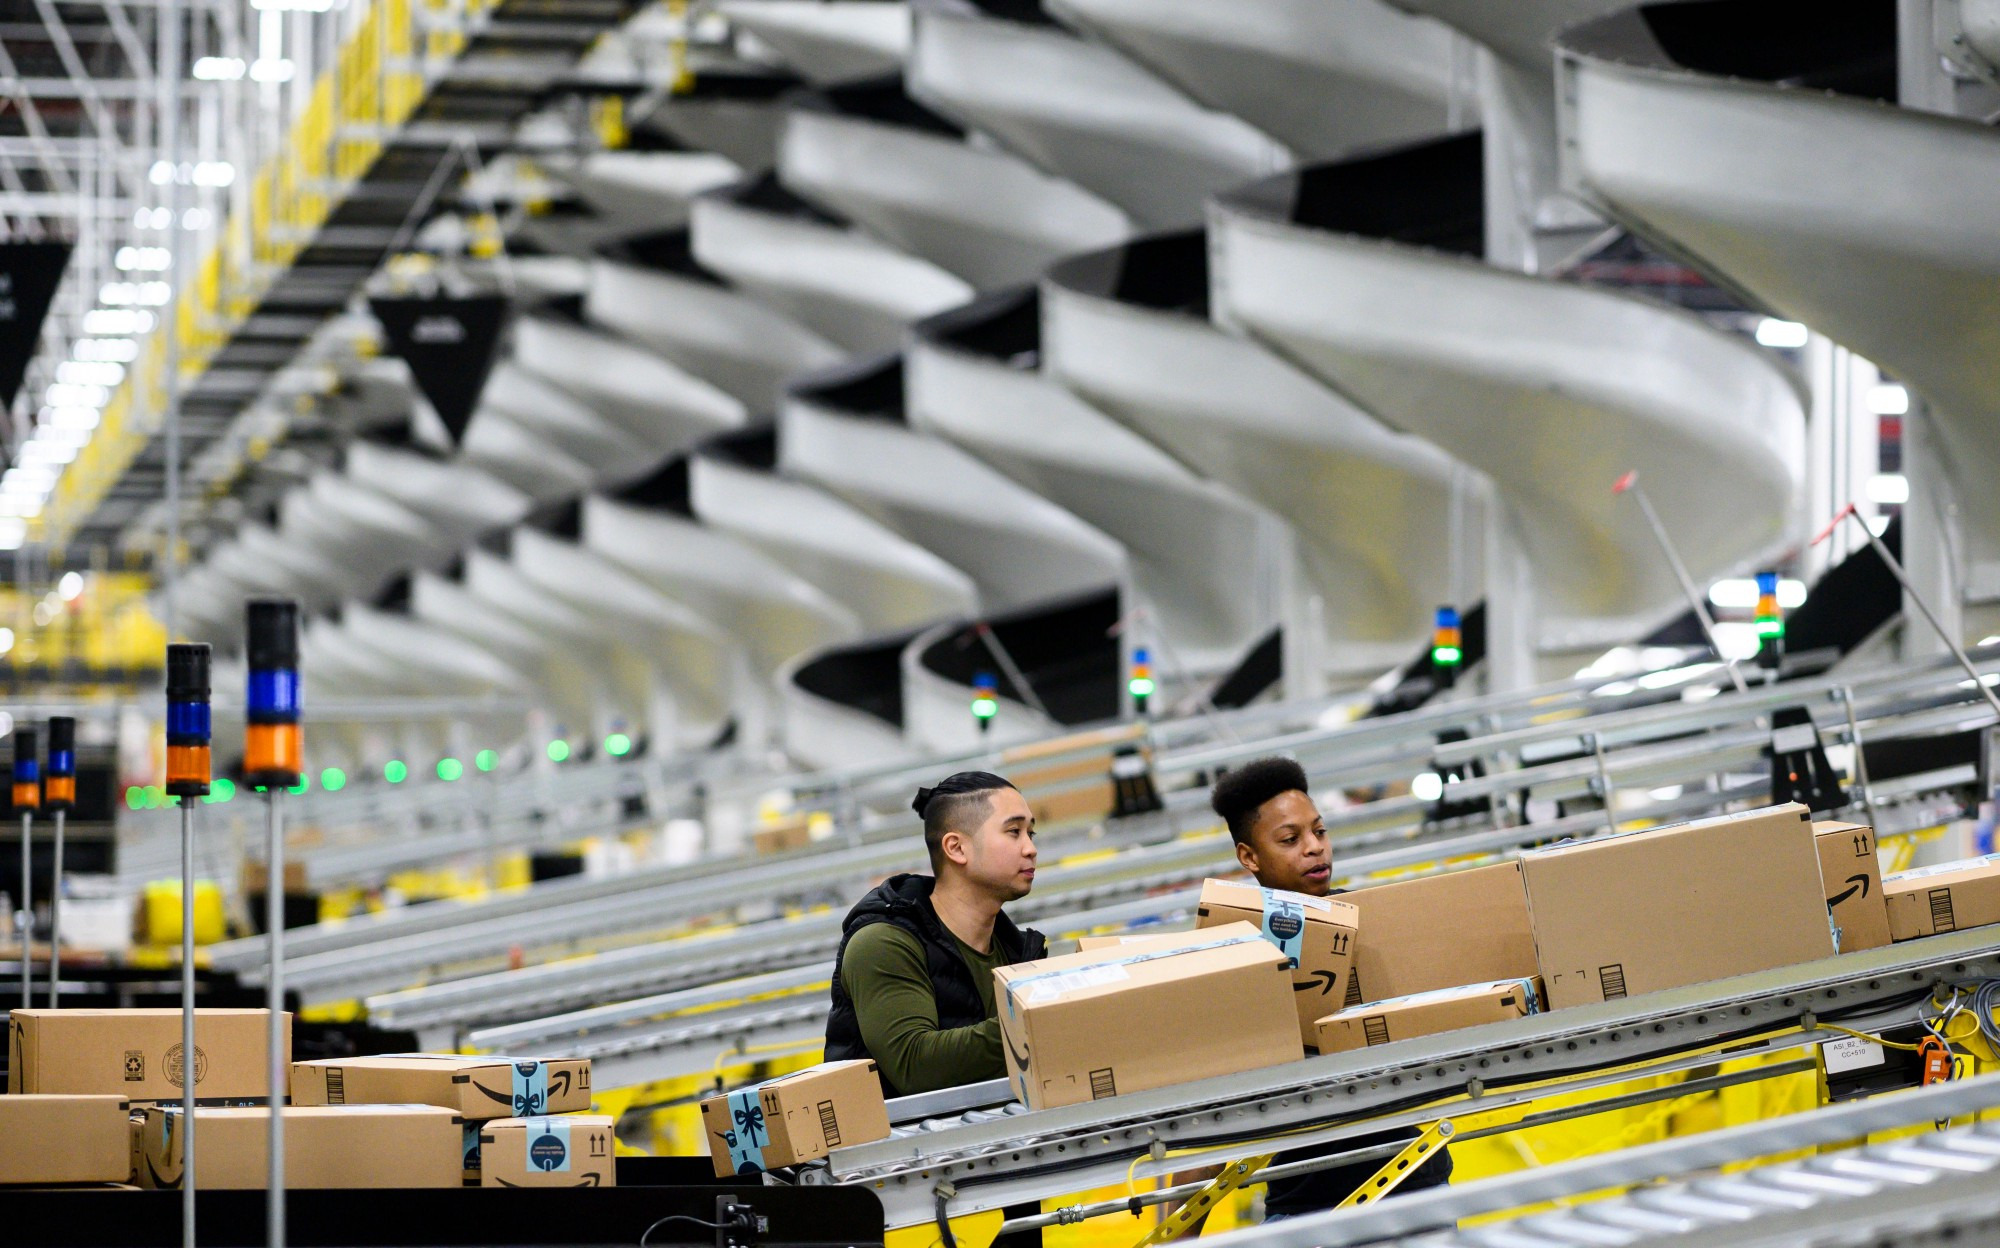 Men work at a distribution station in the 855,000-square-foot Amazon fulfillment center.